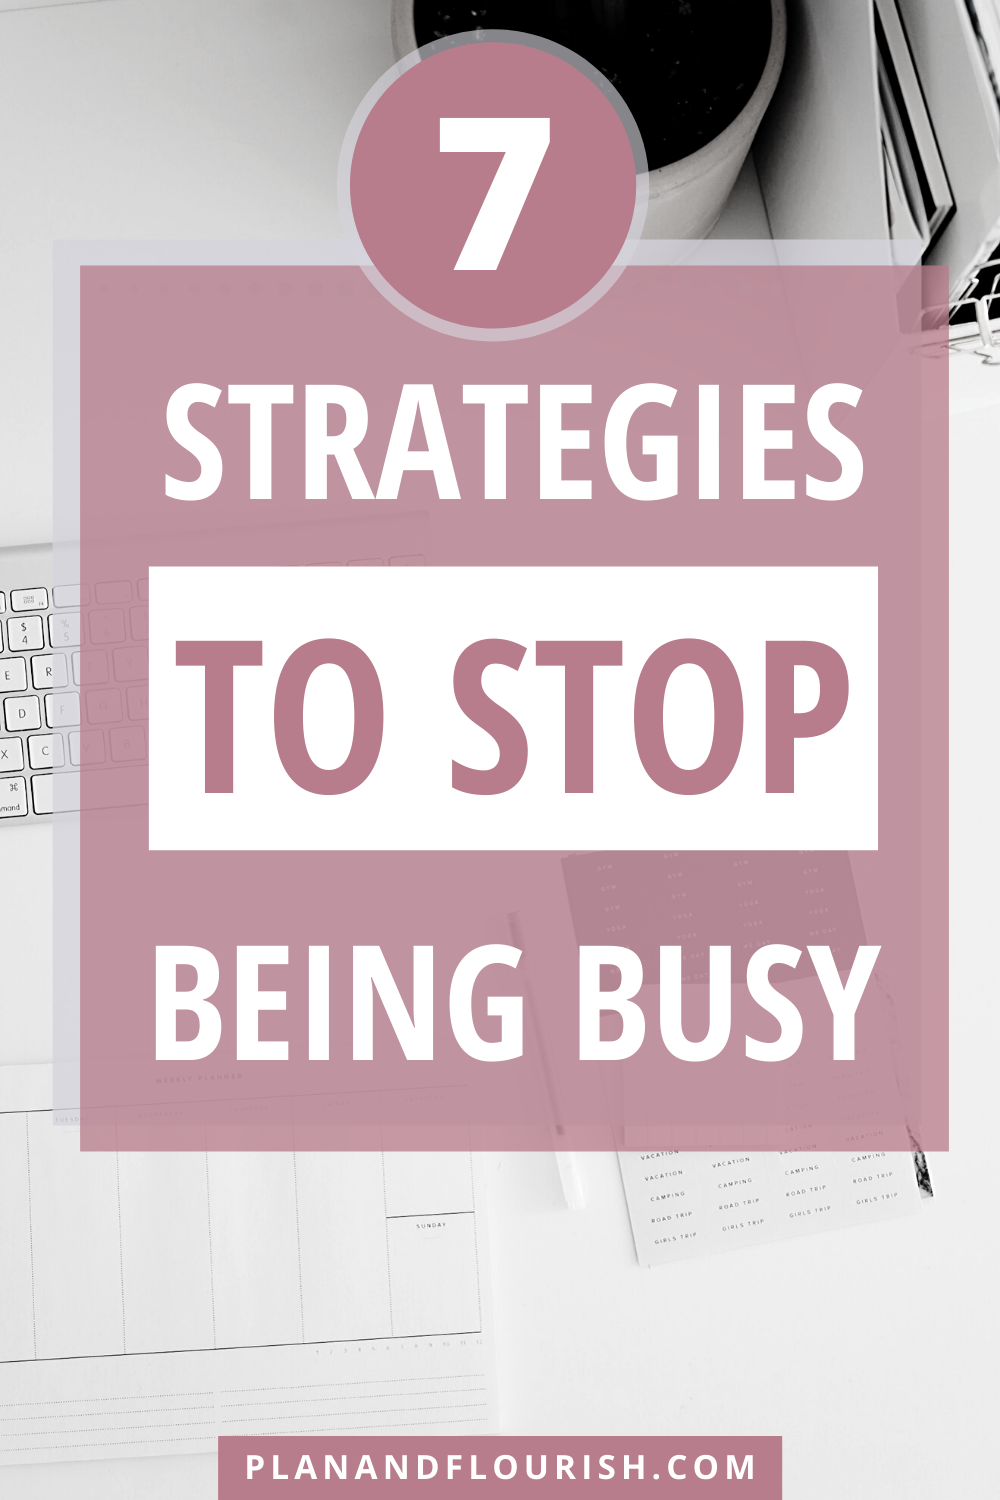 7 Strategies To Stop Being Busy